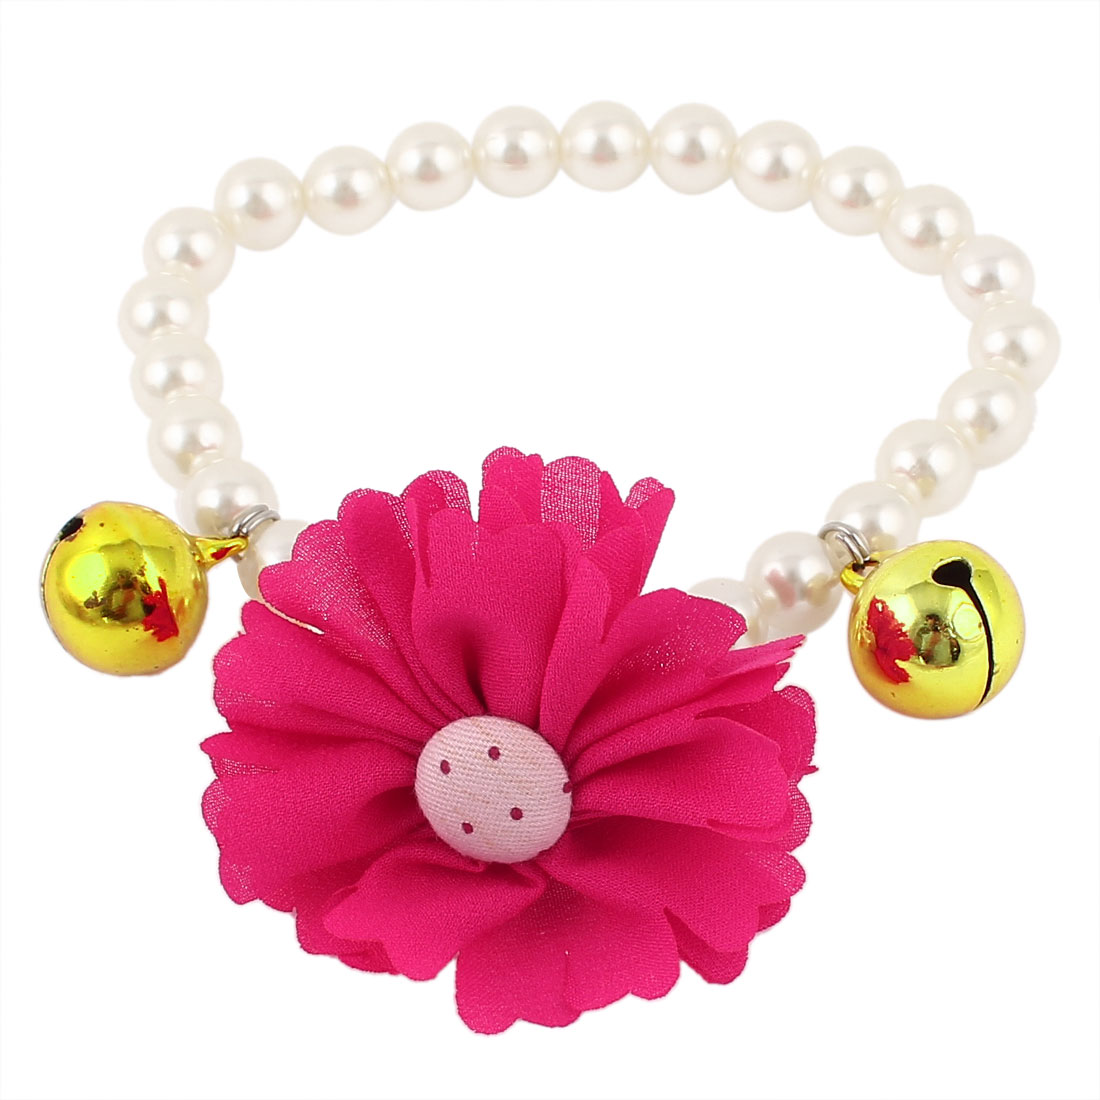 Metal Bell Pendant Flower Accent Pet Dog Plastic Beads Pearls Collar Necklace White Fuchsia S